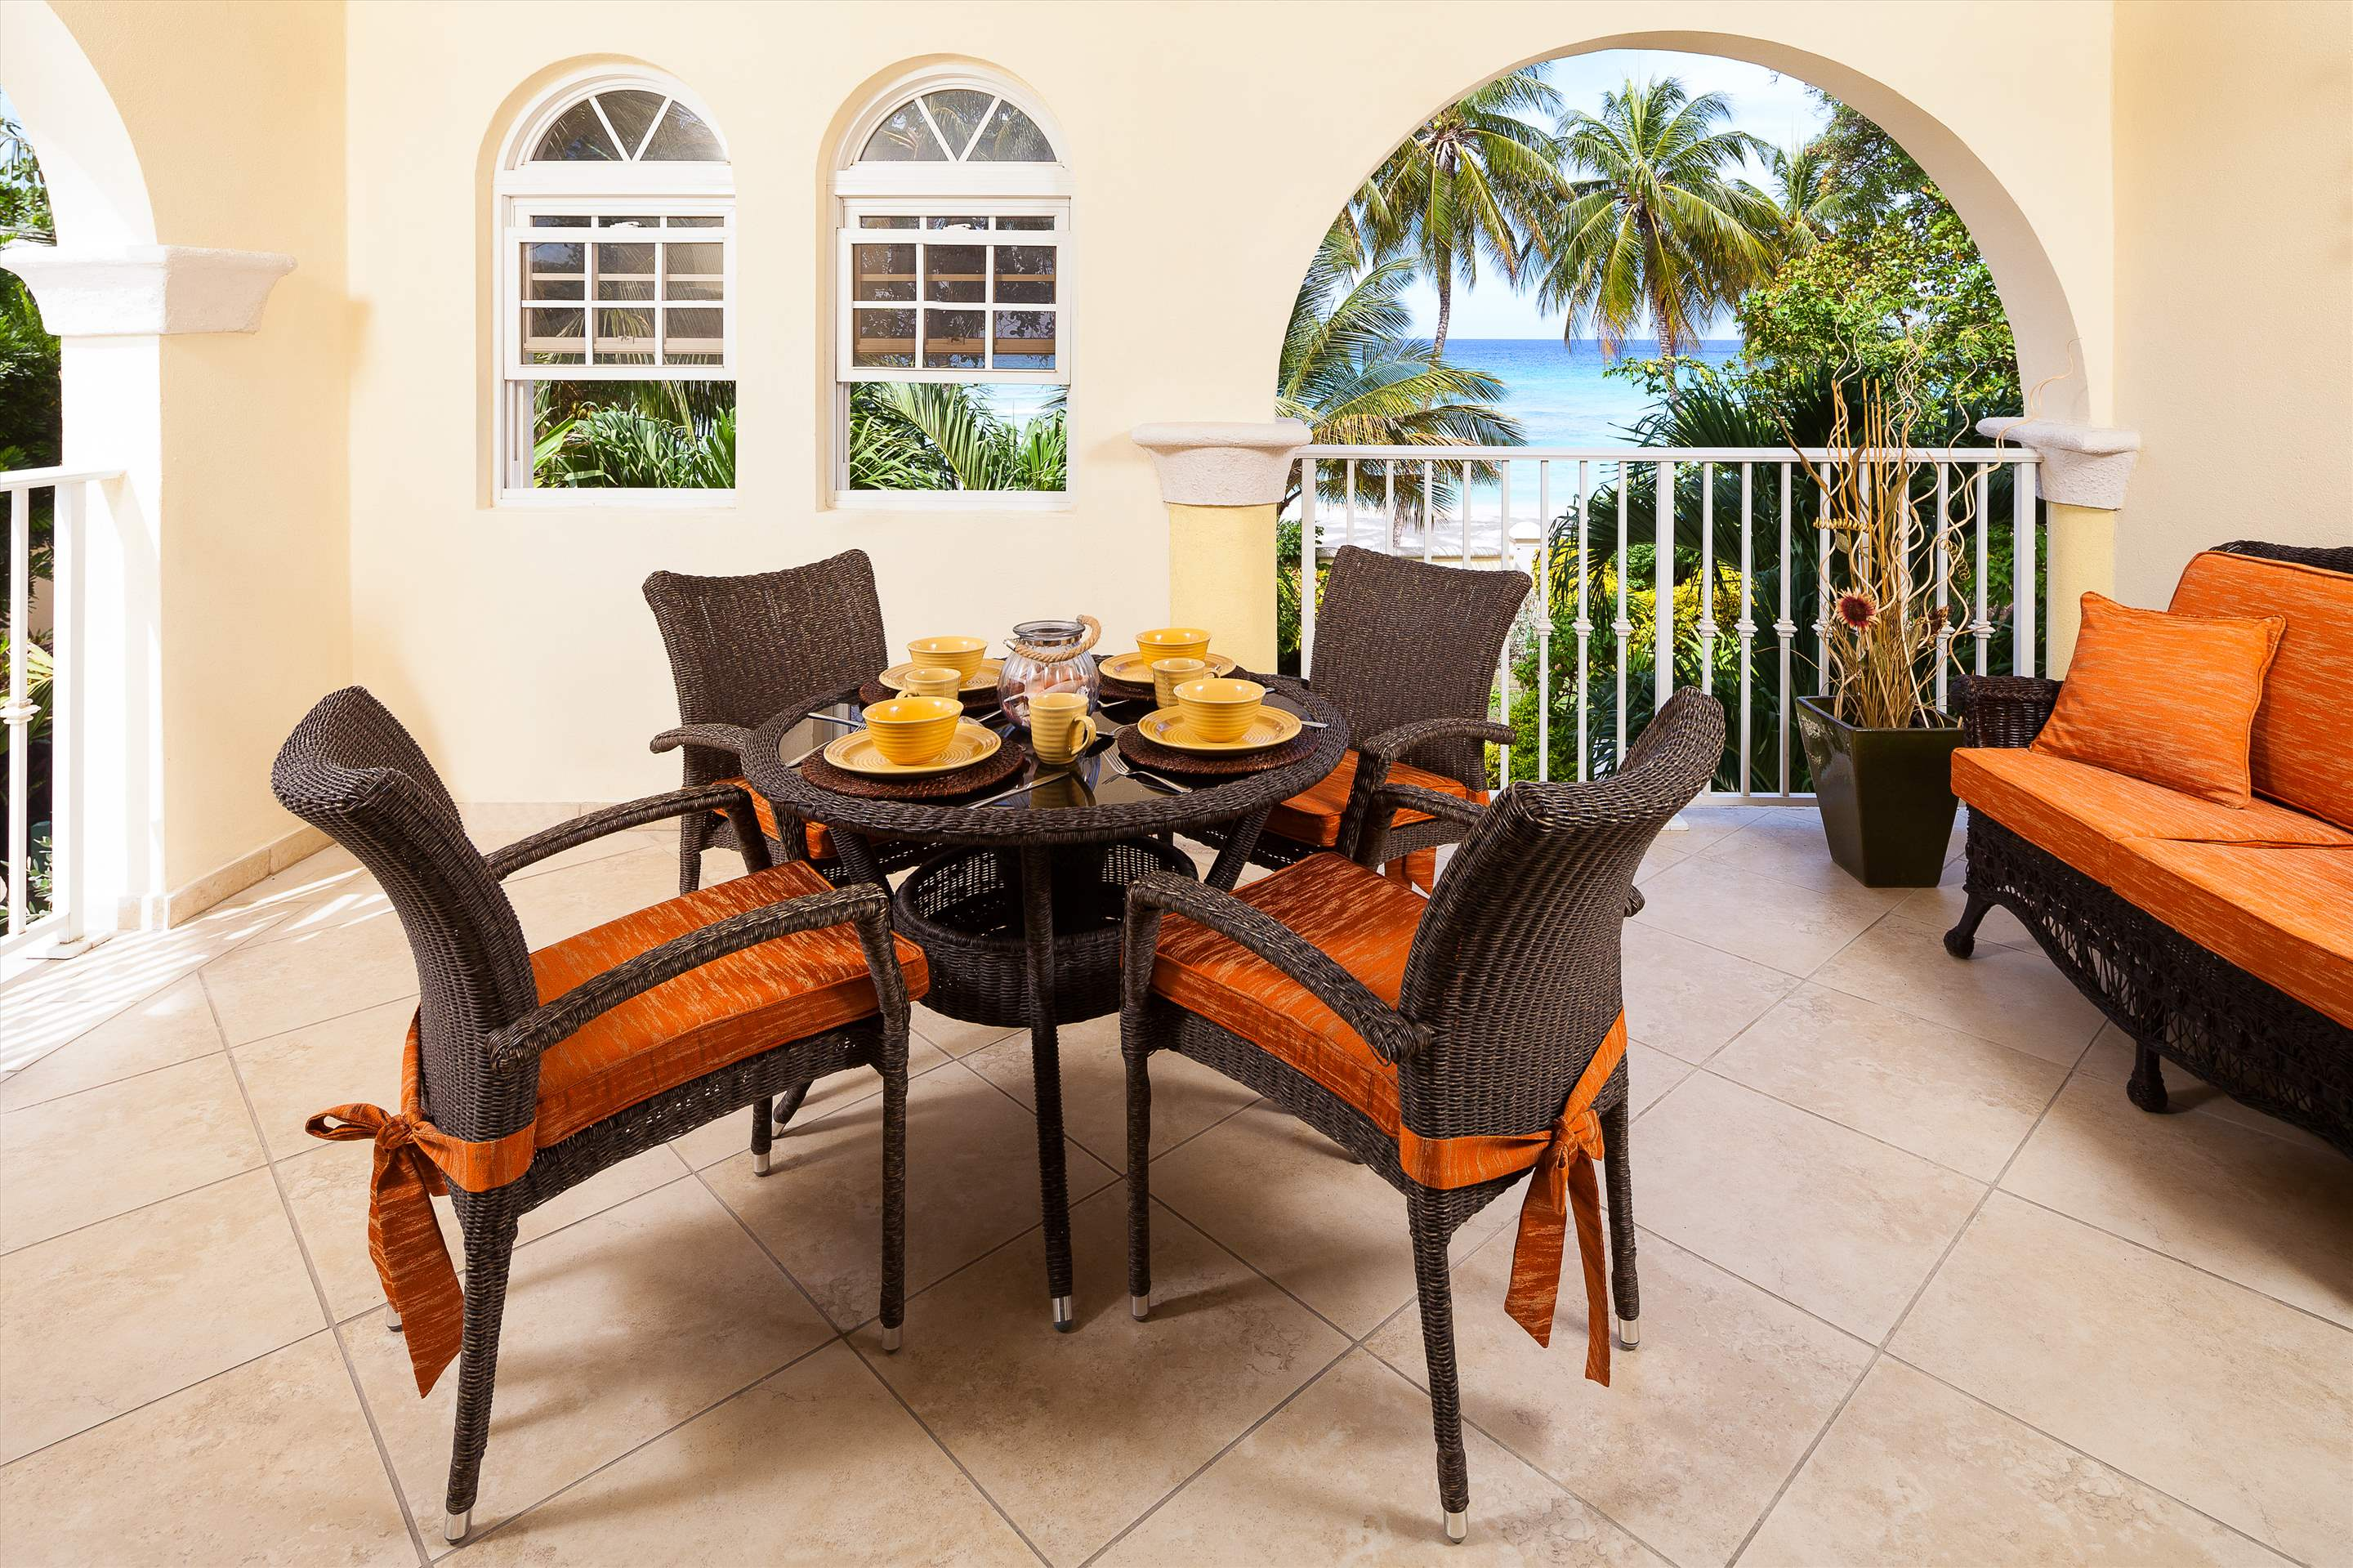 Sapphire Beach 118, 2 bedroom , 2 bedroom apartment in St. Lawrence Gap & South Coast, Barbados